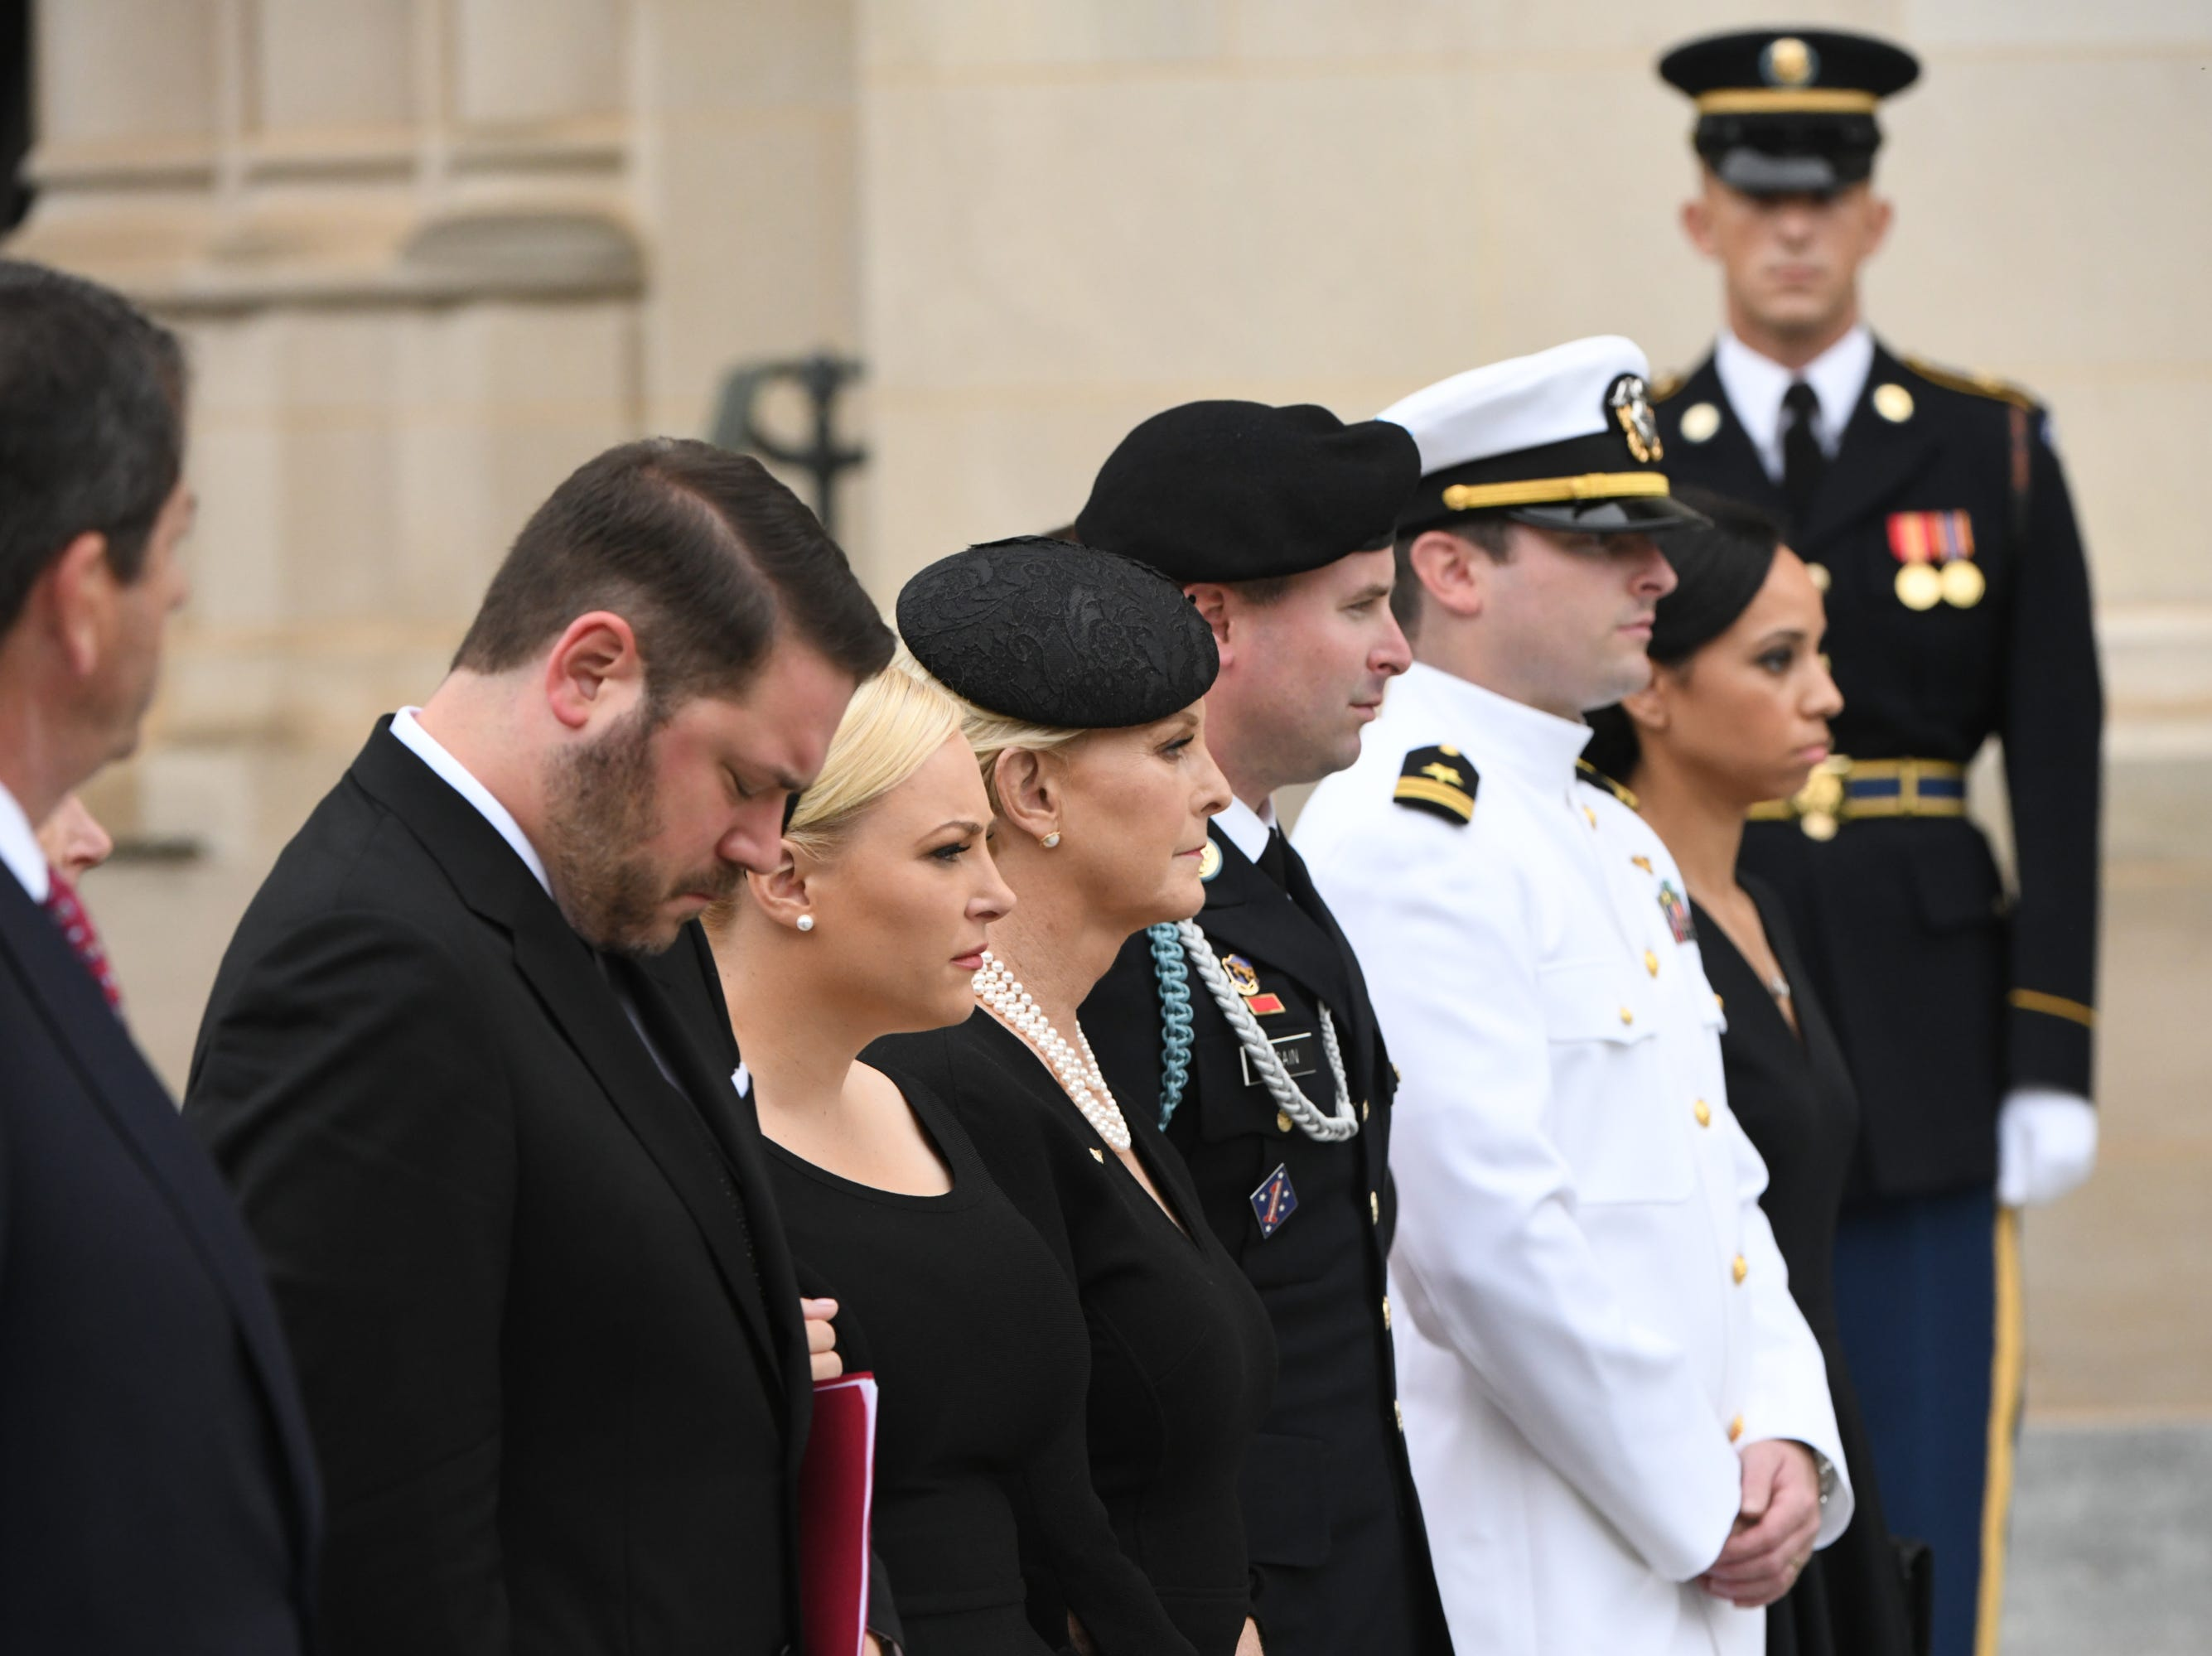 9/1/18 9:42:32 AM -- Washington, DC, U.S.A  -- Members of the McCain family watch as John McCainÕs casket is carried into the National Cathedral in Washington for a memorial service on Sept. 1, 2018. Sen. McCain died on Aug. 25. --    Photo by Jasper Colt, USA TODAY Staff